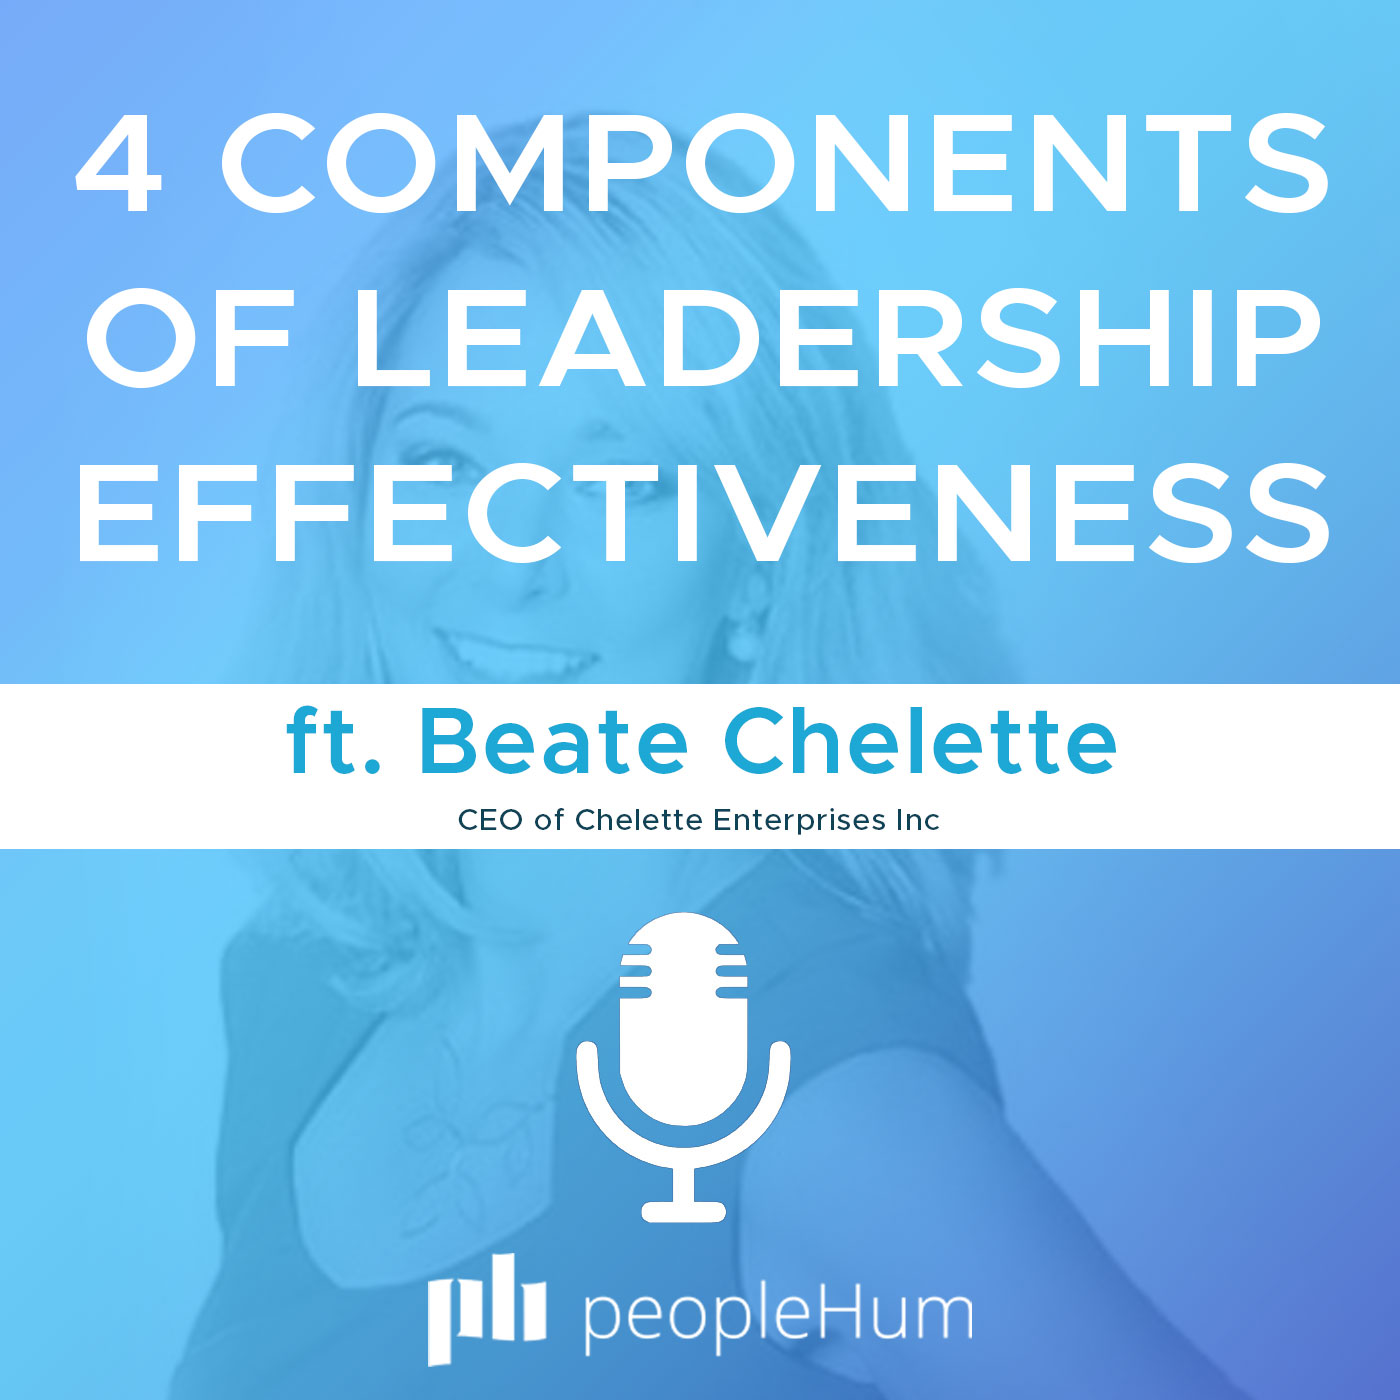 4 components of leadership effectiveness,  ft. Beate Chelette